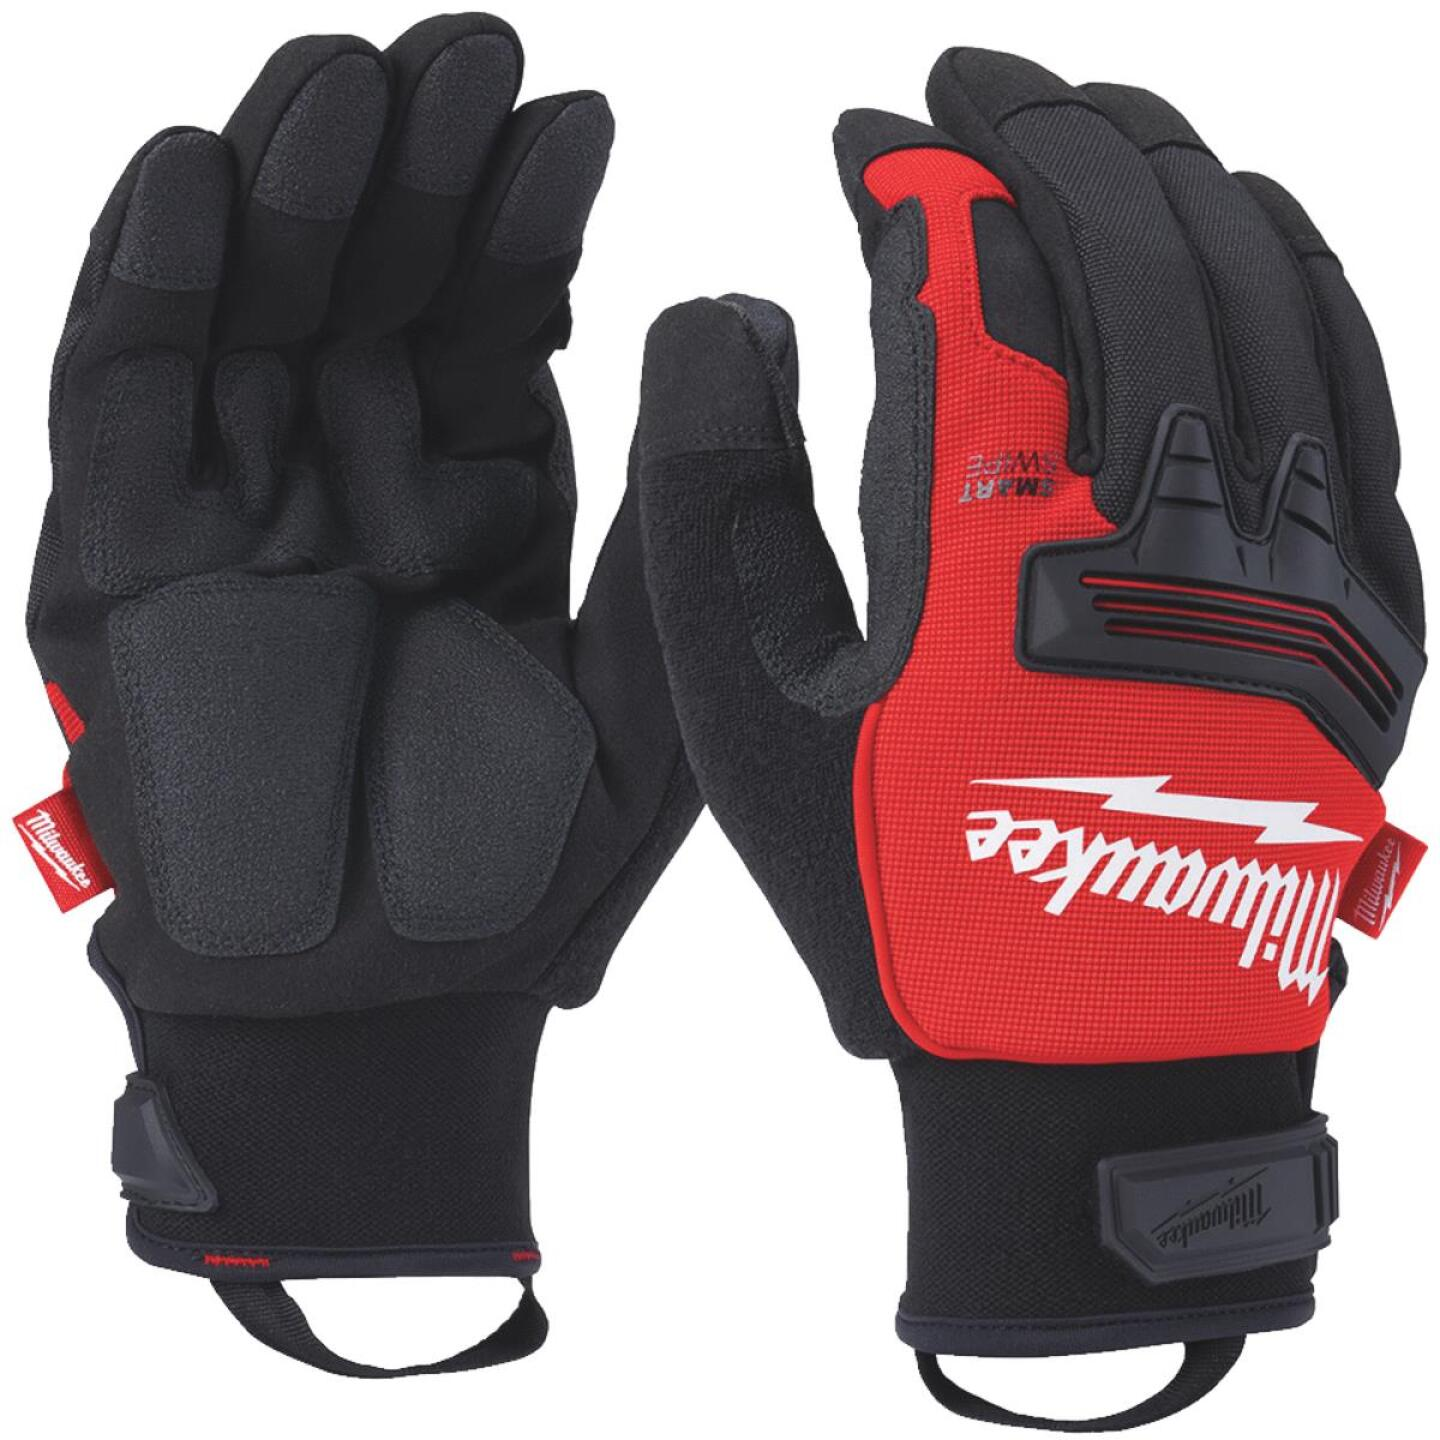 Milwaukee Men's Large Synthetic Winter Demolition Glove Image 1